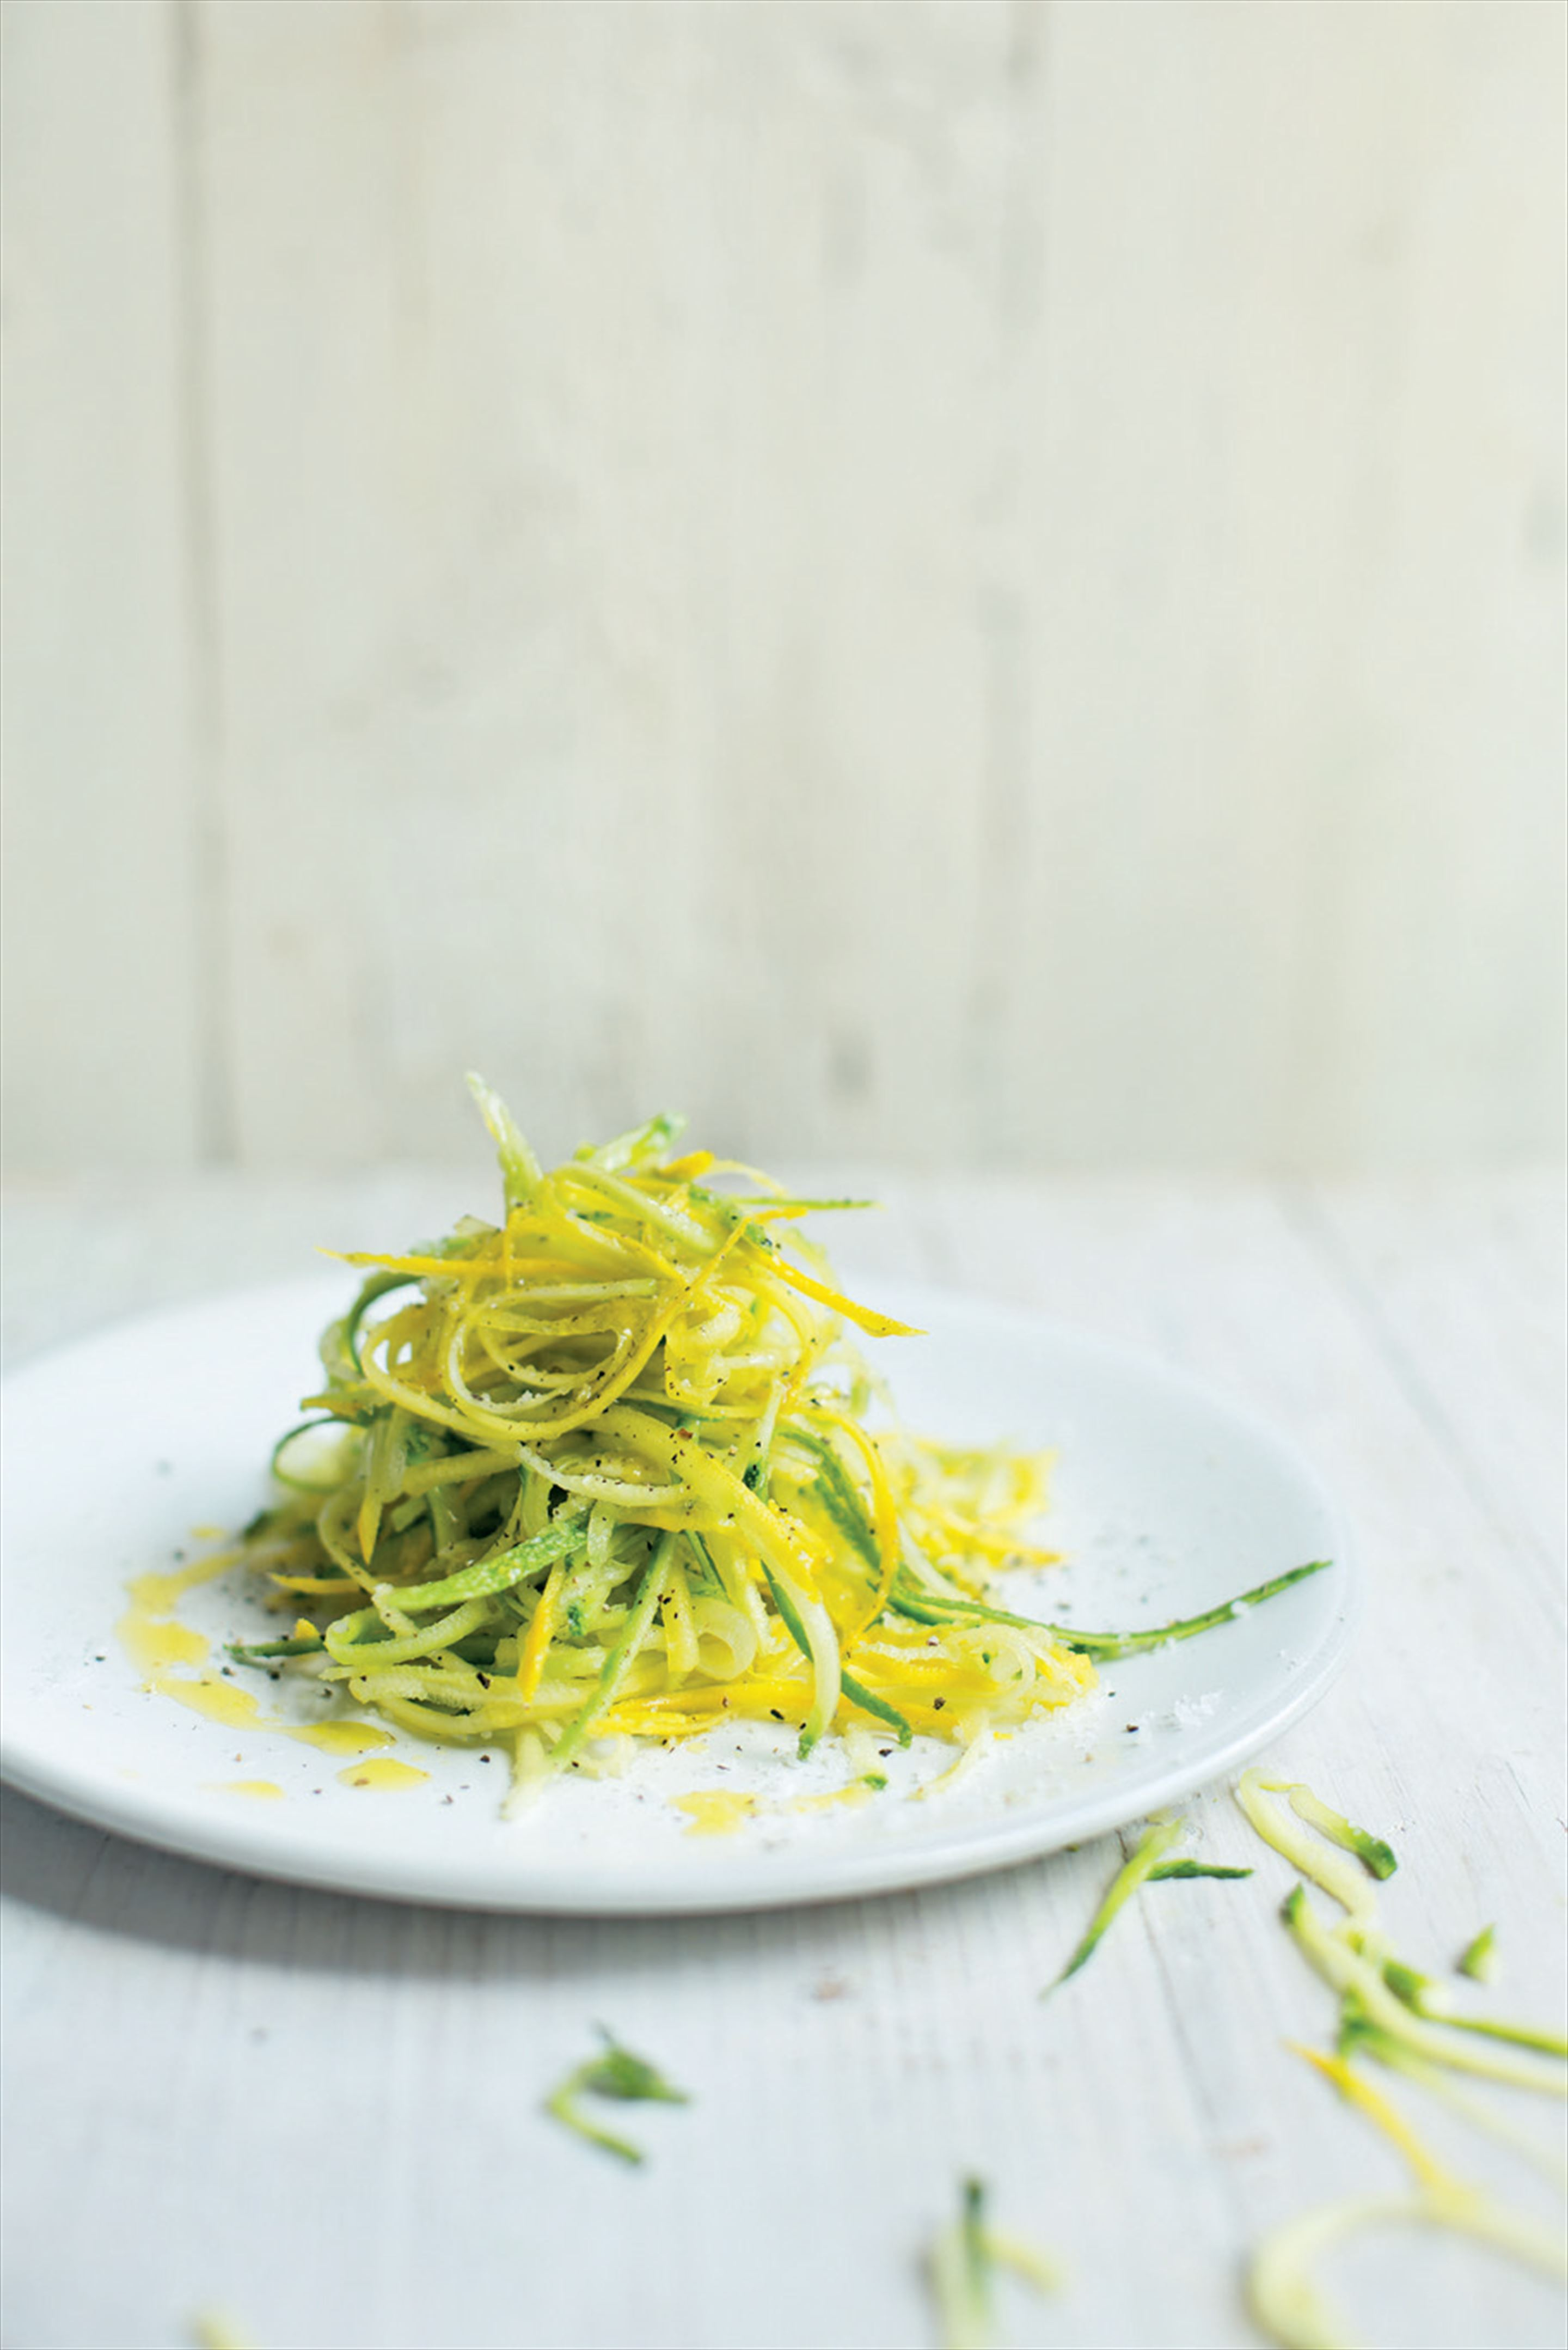 Raw courgette 'spaghetti'